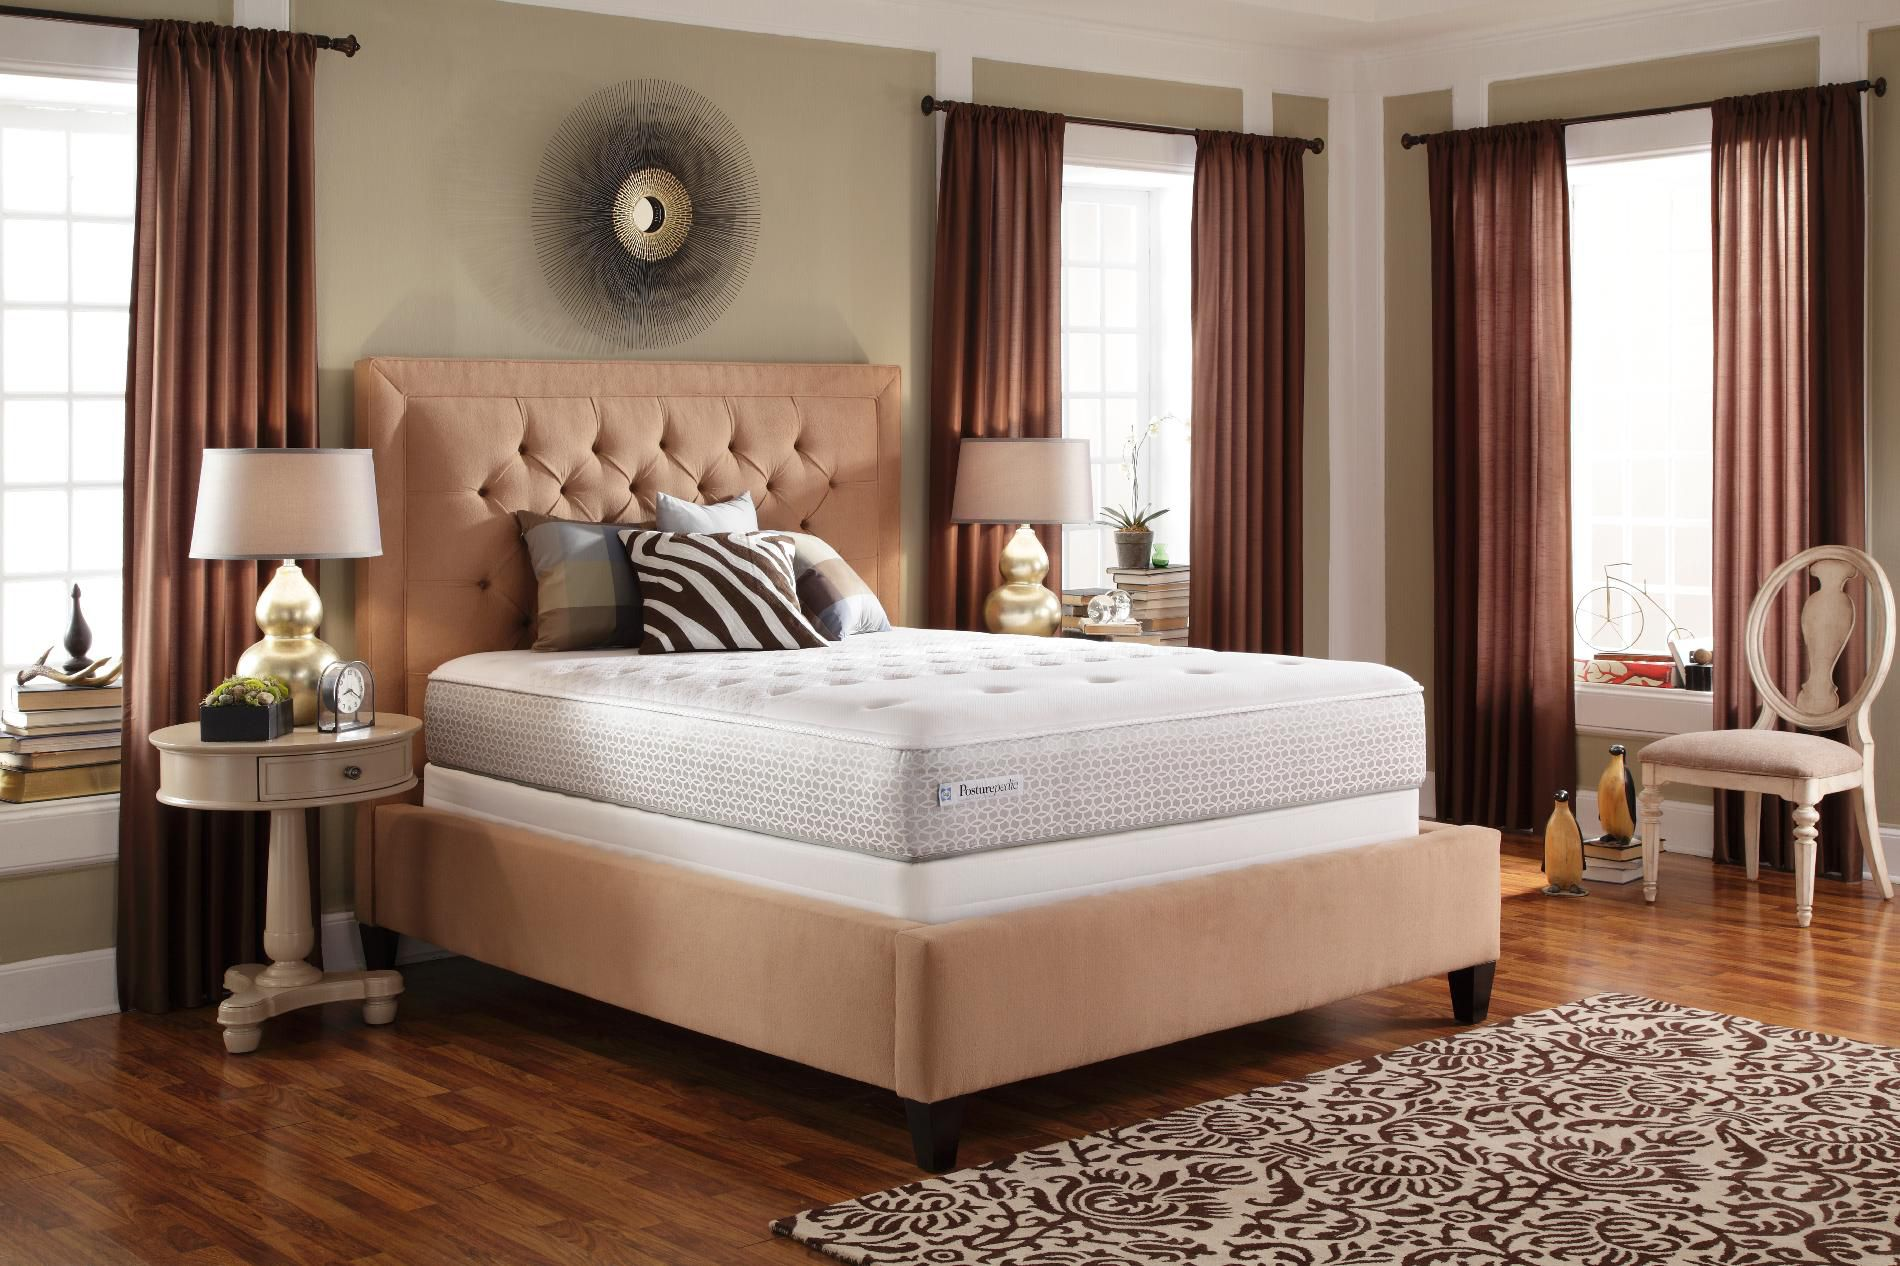 Sealy Cushion firm Queen Innerspring Mattress Find the